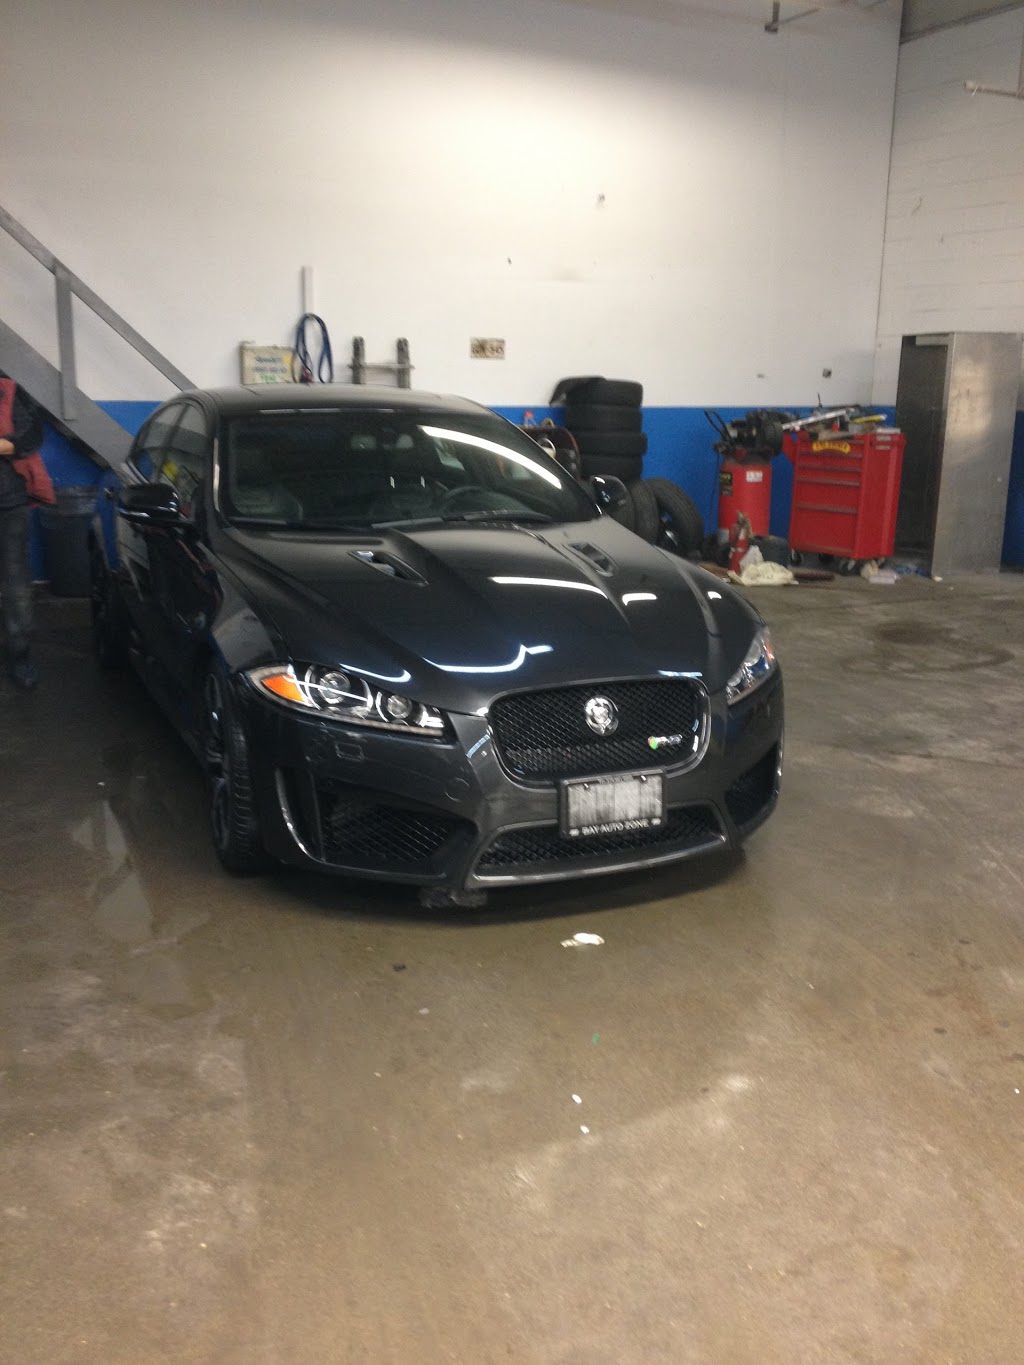 Expert car detailing | car wash | 4256 Chesswood Dr, North York, ON M3J 2B9, Canada | 4168875893 OR +1 416-887-5893